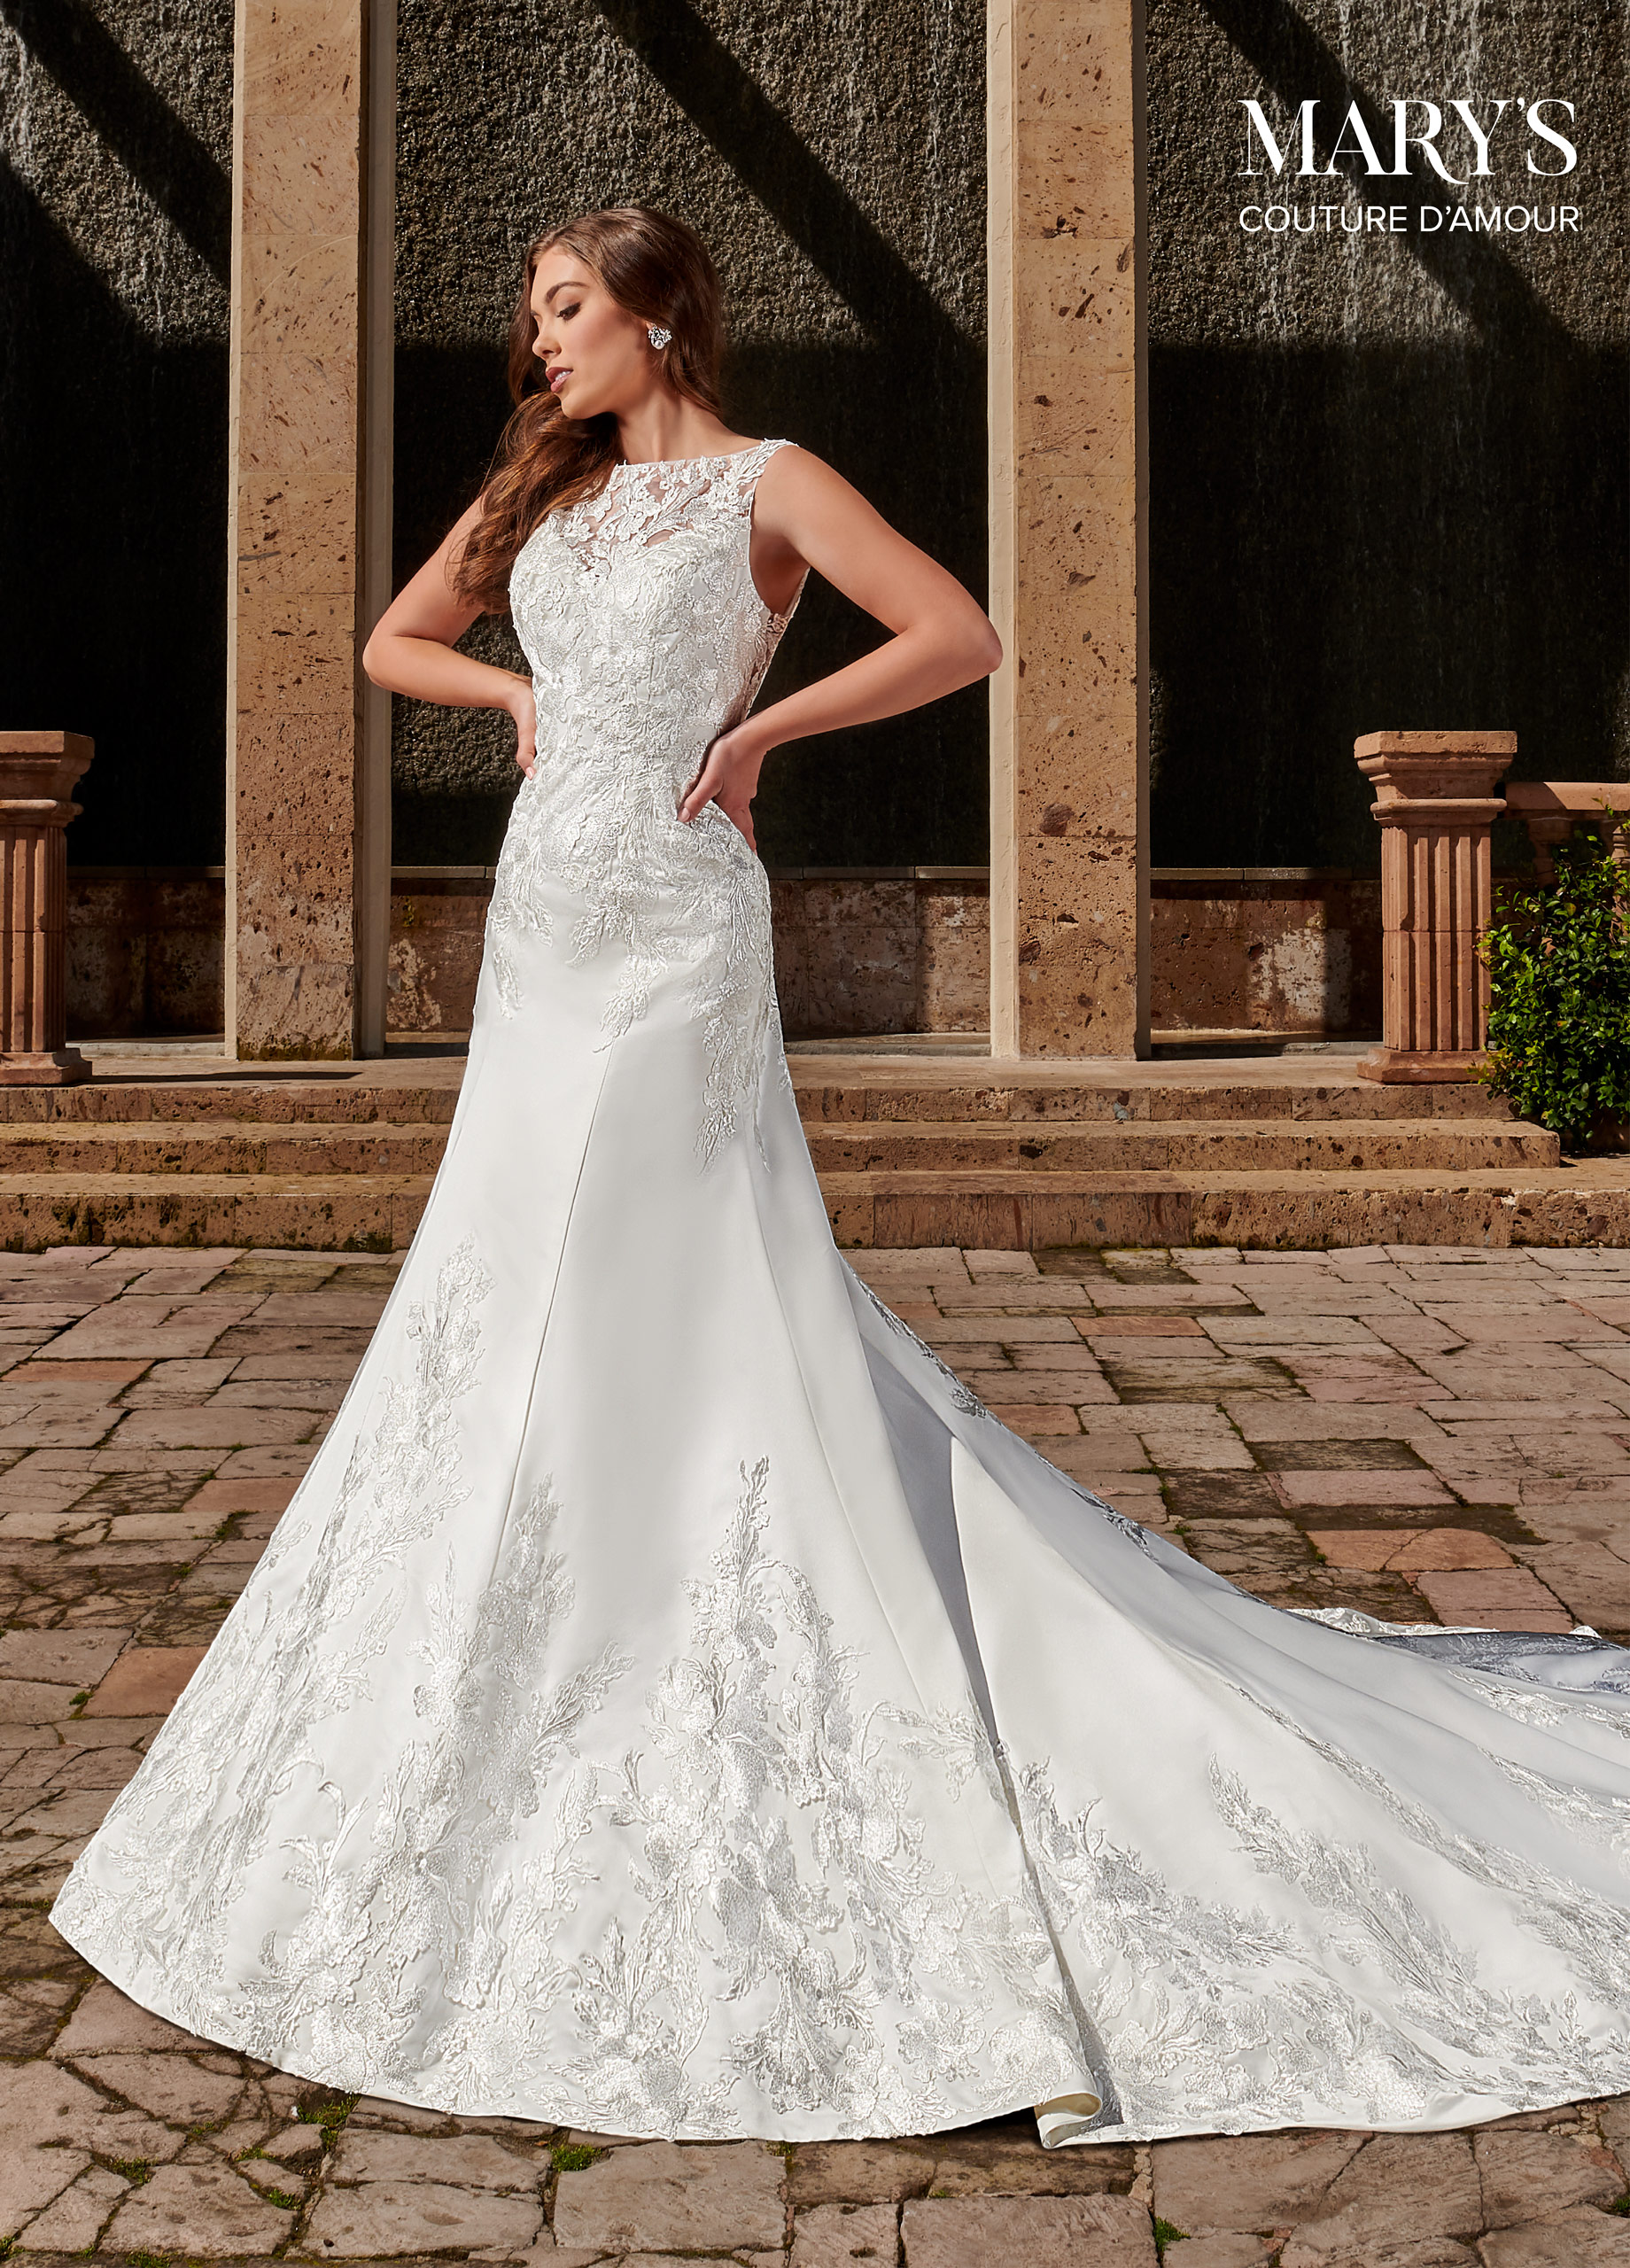 Couture Damour Bridal Dresses | Couture d'Amour | Style - MB4102